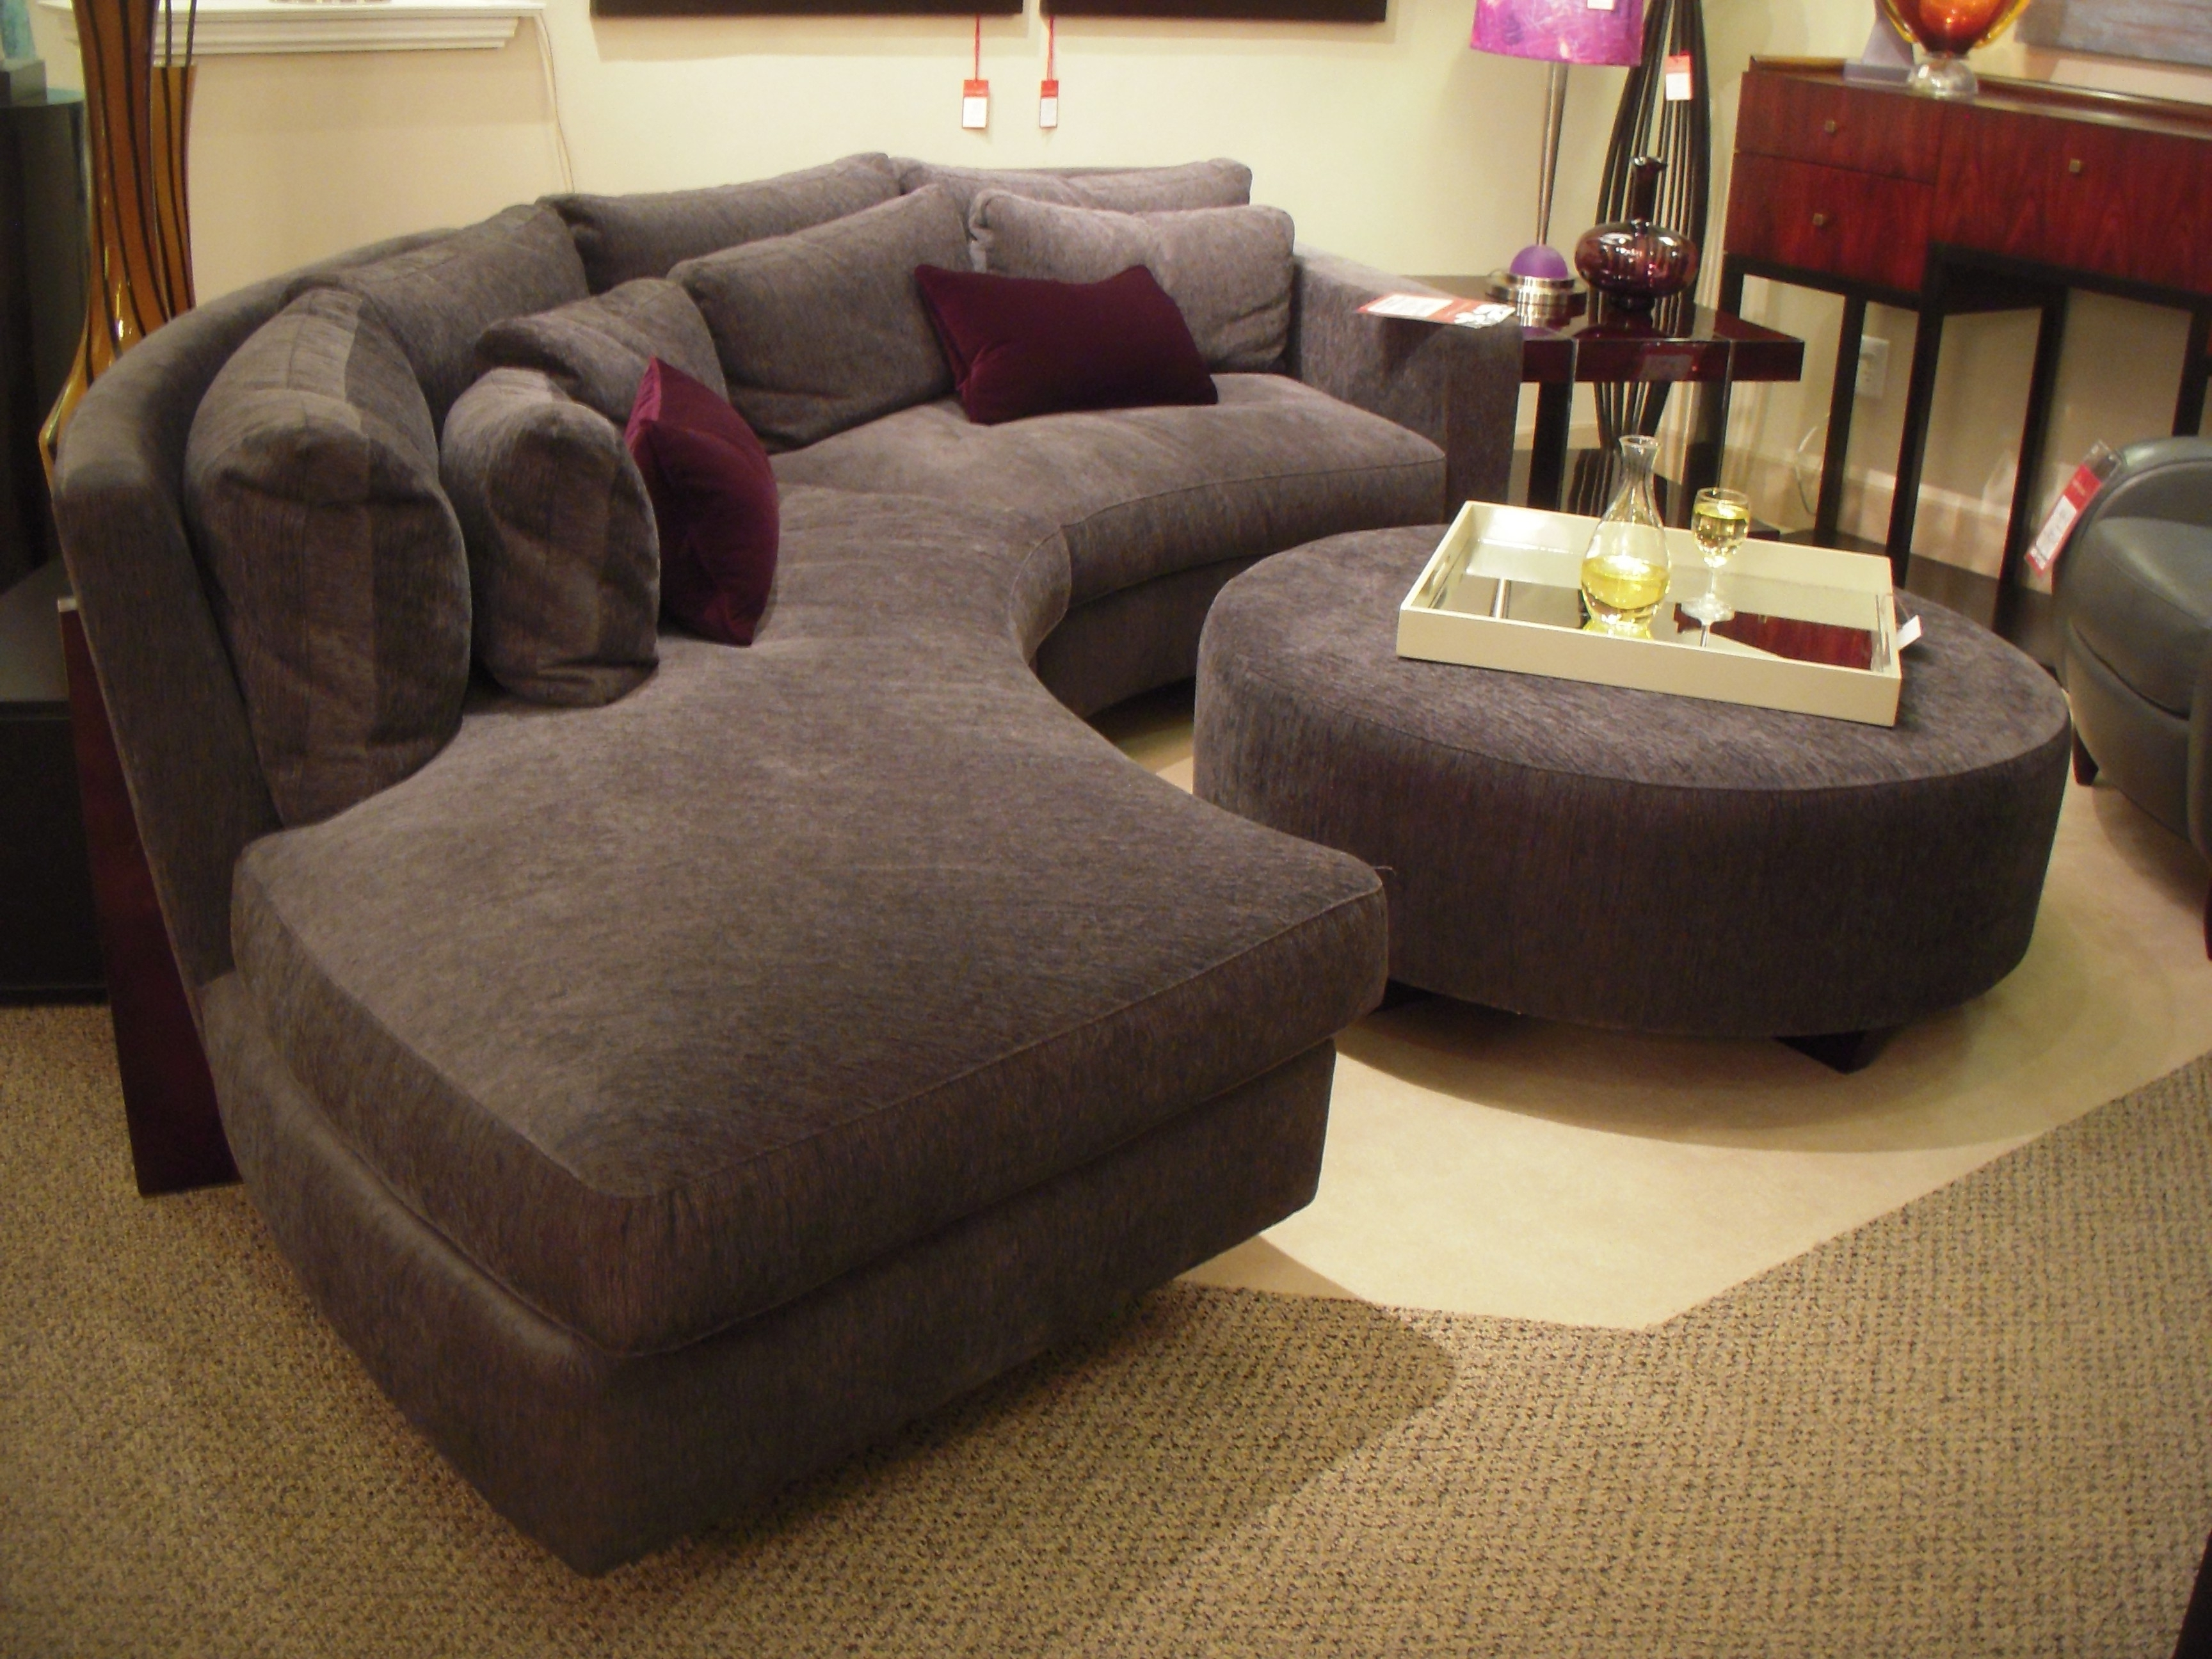 Circular Sectional Sofas Intended For Most Recently Released Sofa : Glamorous Round Sectional Sofa Bed Curved Leather Tufted (View 8 of 20)